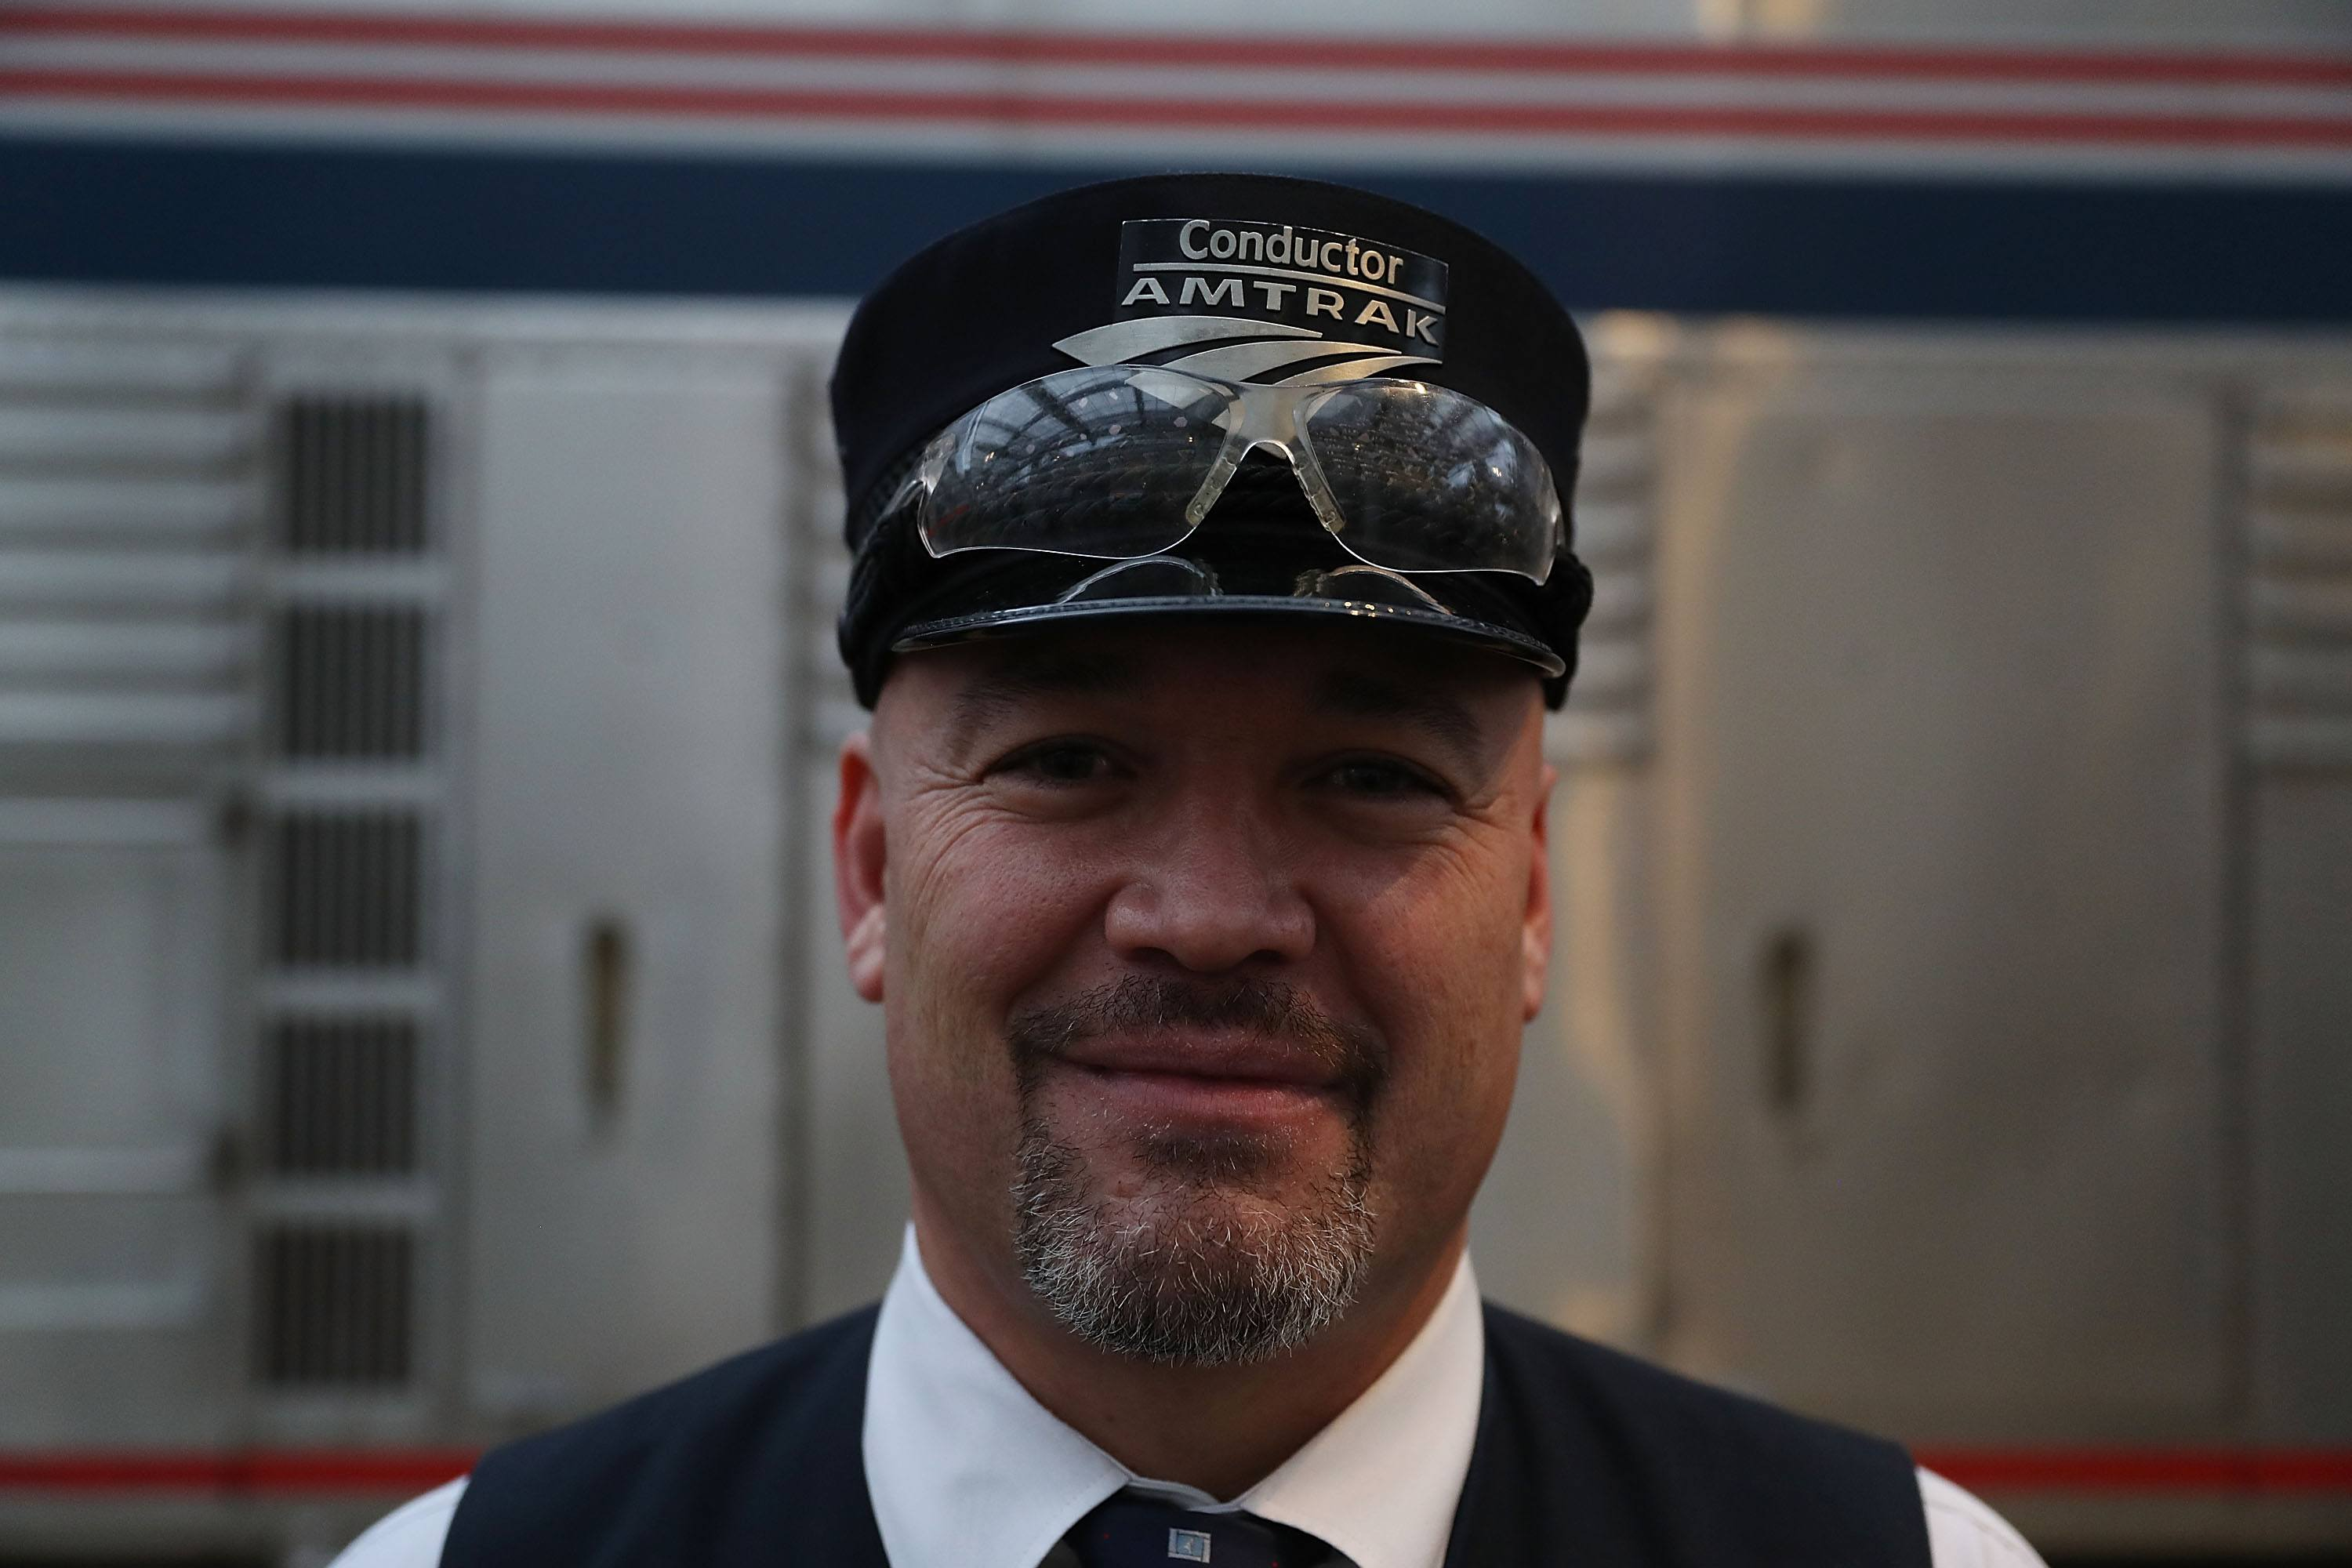 Male train conductor